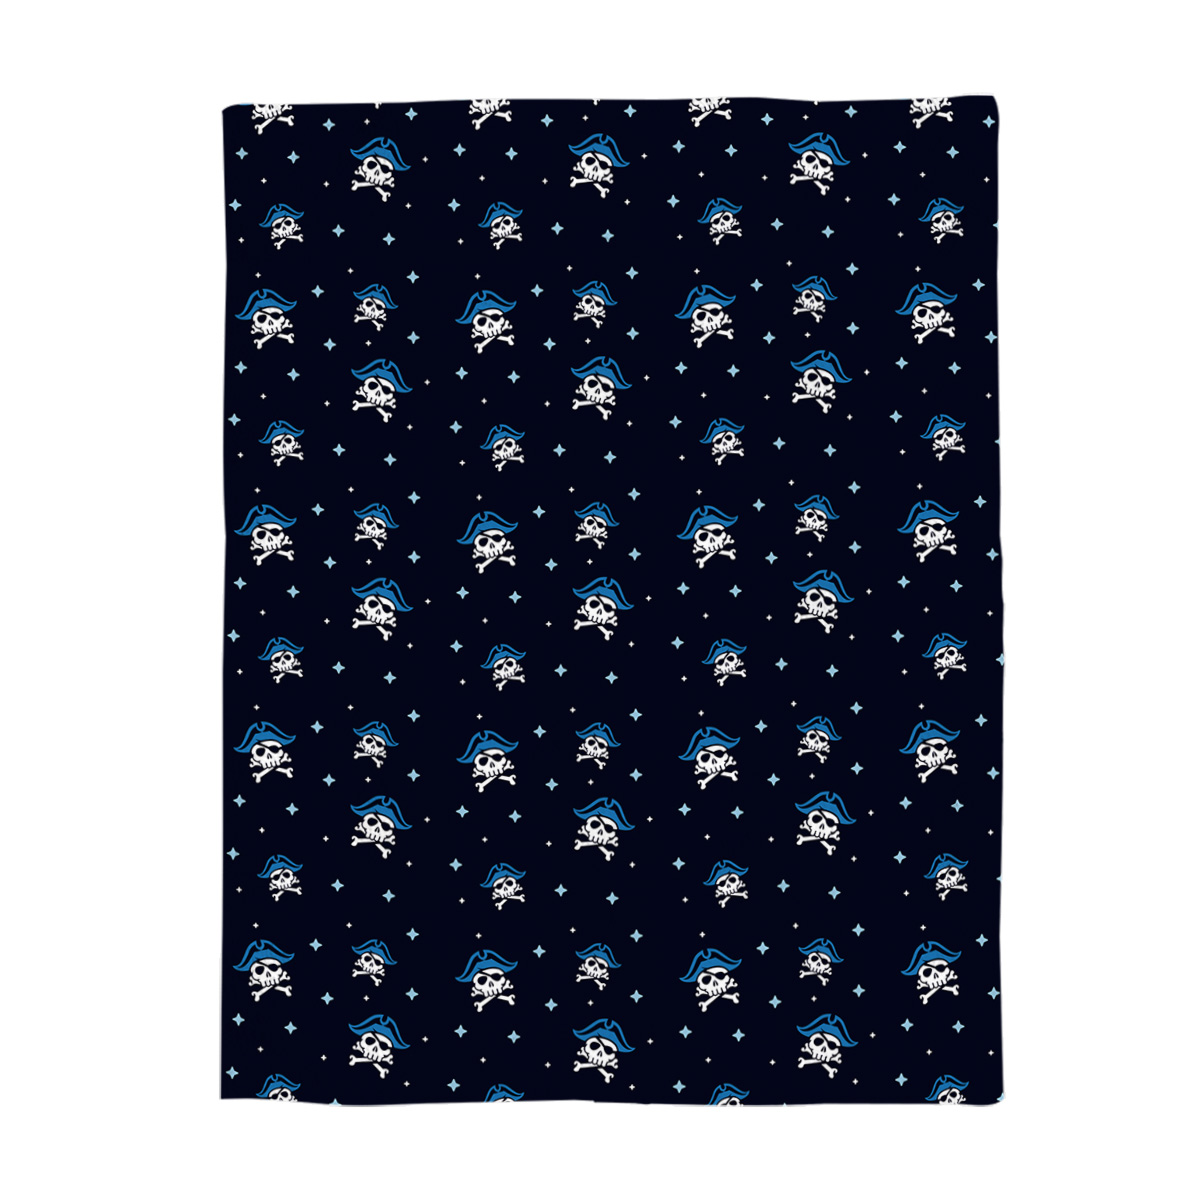 Printed Blanket The Skeleton of A Deep Blue Sea Squid. A Big Axe and A Big Knife. Japanese Cartoon Blanket Black and Blue